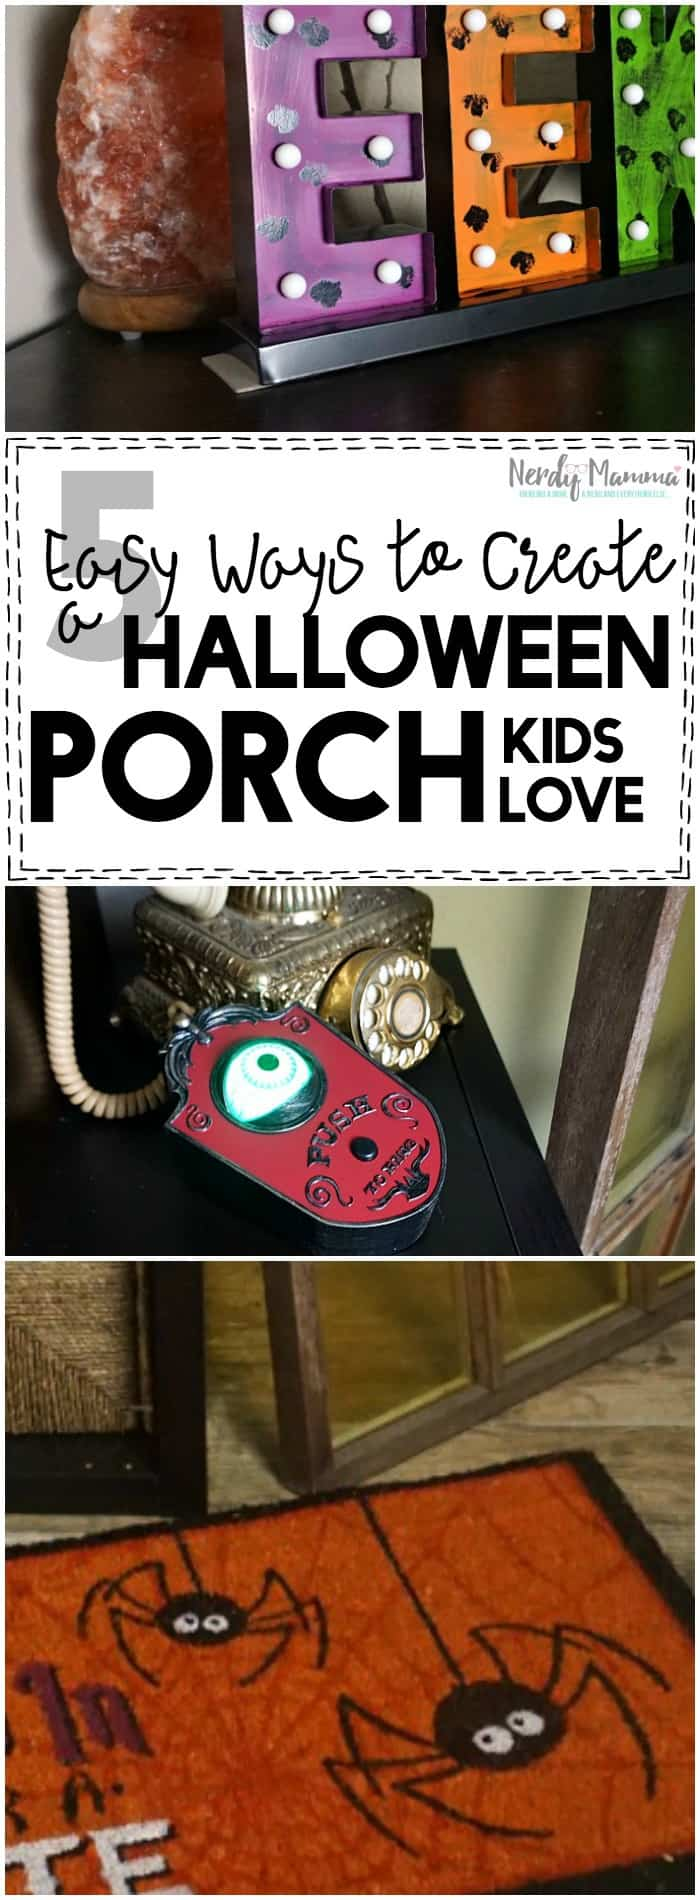 i-love-these-5-easy-ways-to-create-a-halloween-porch-kids-love-so-simple-and-so-fun